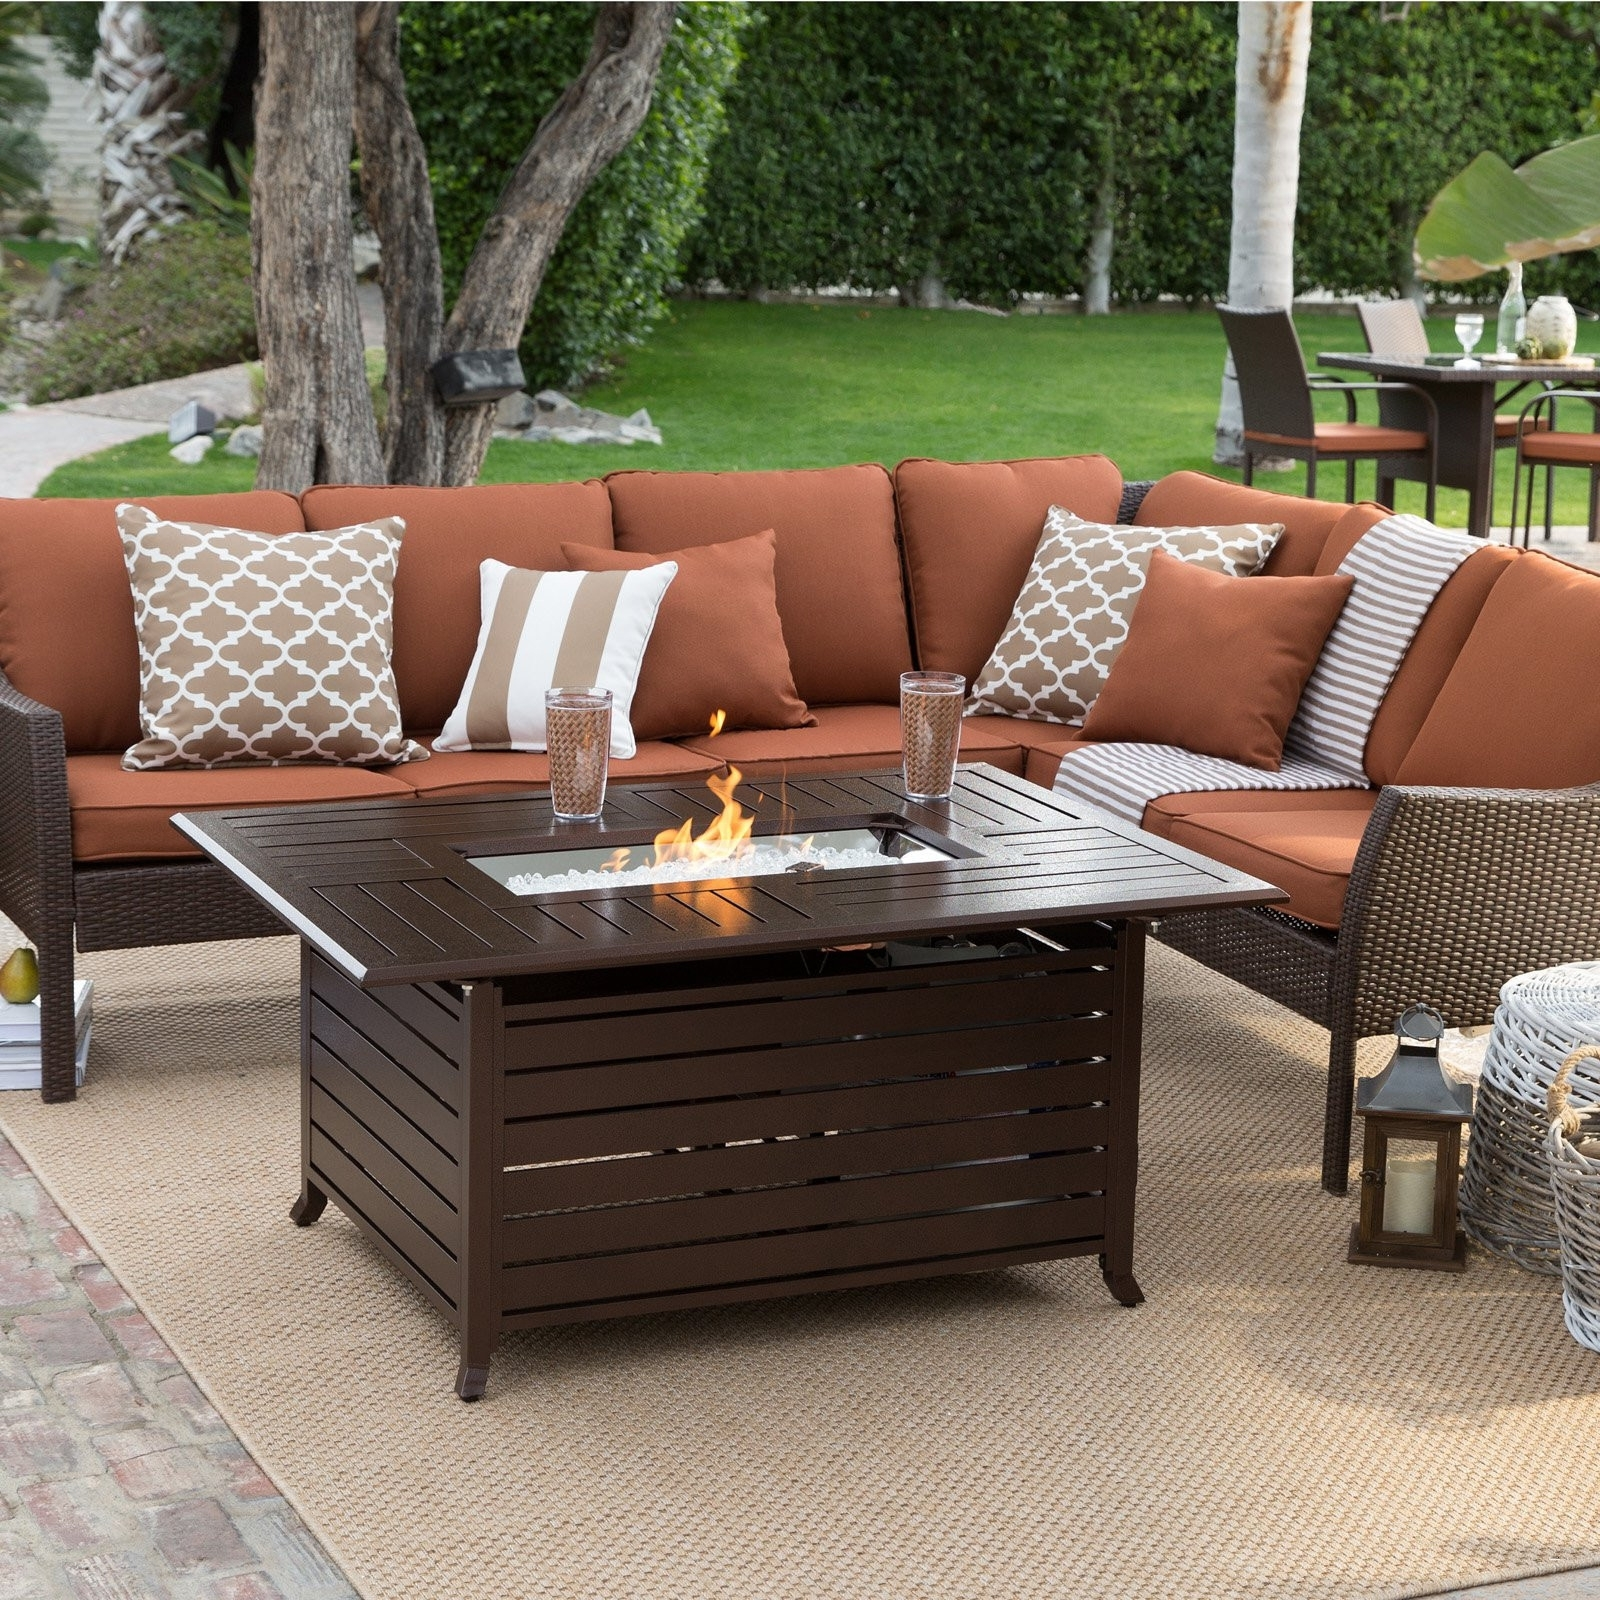 Fireplace Tables Outdoor Unique Patio Conversation Sets With Fire With Regard To Most Up To Date Patio Conversation Sets With Fire Pit (View 6 of 15)